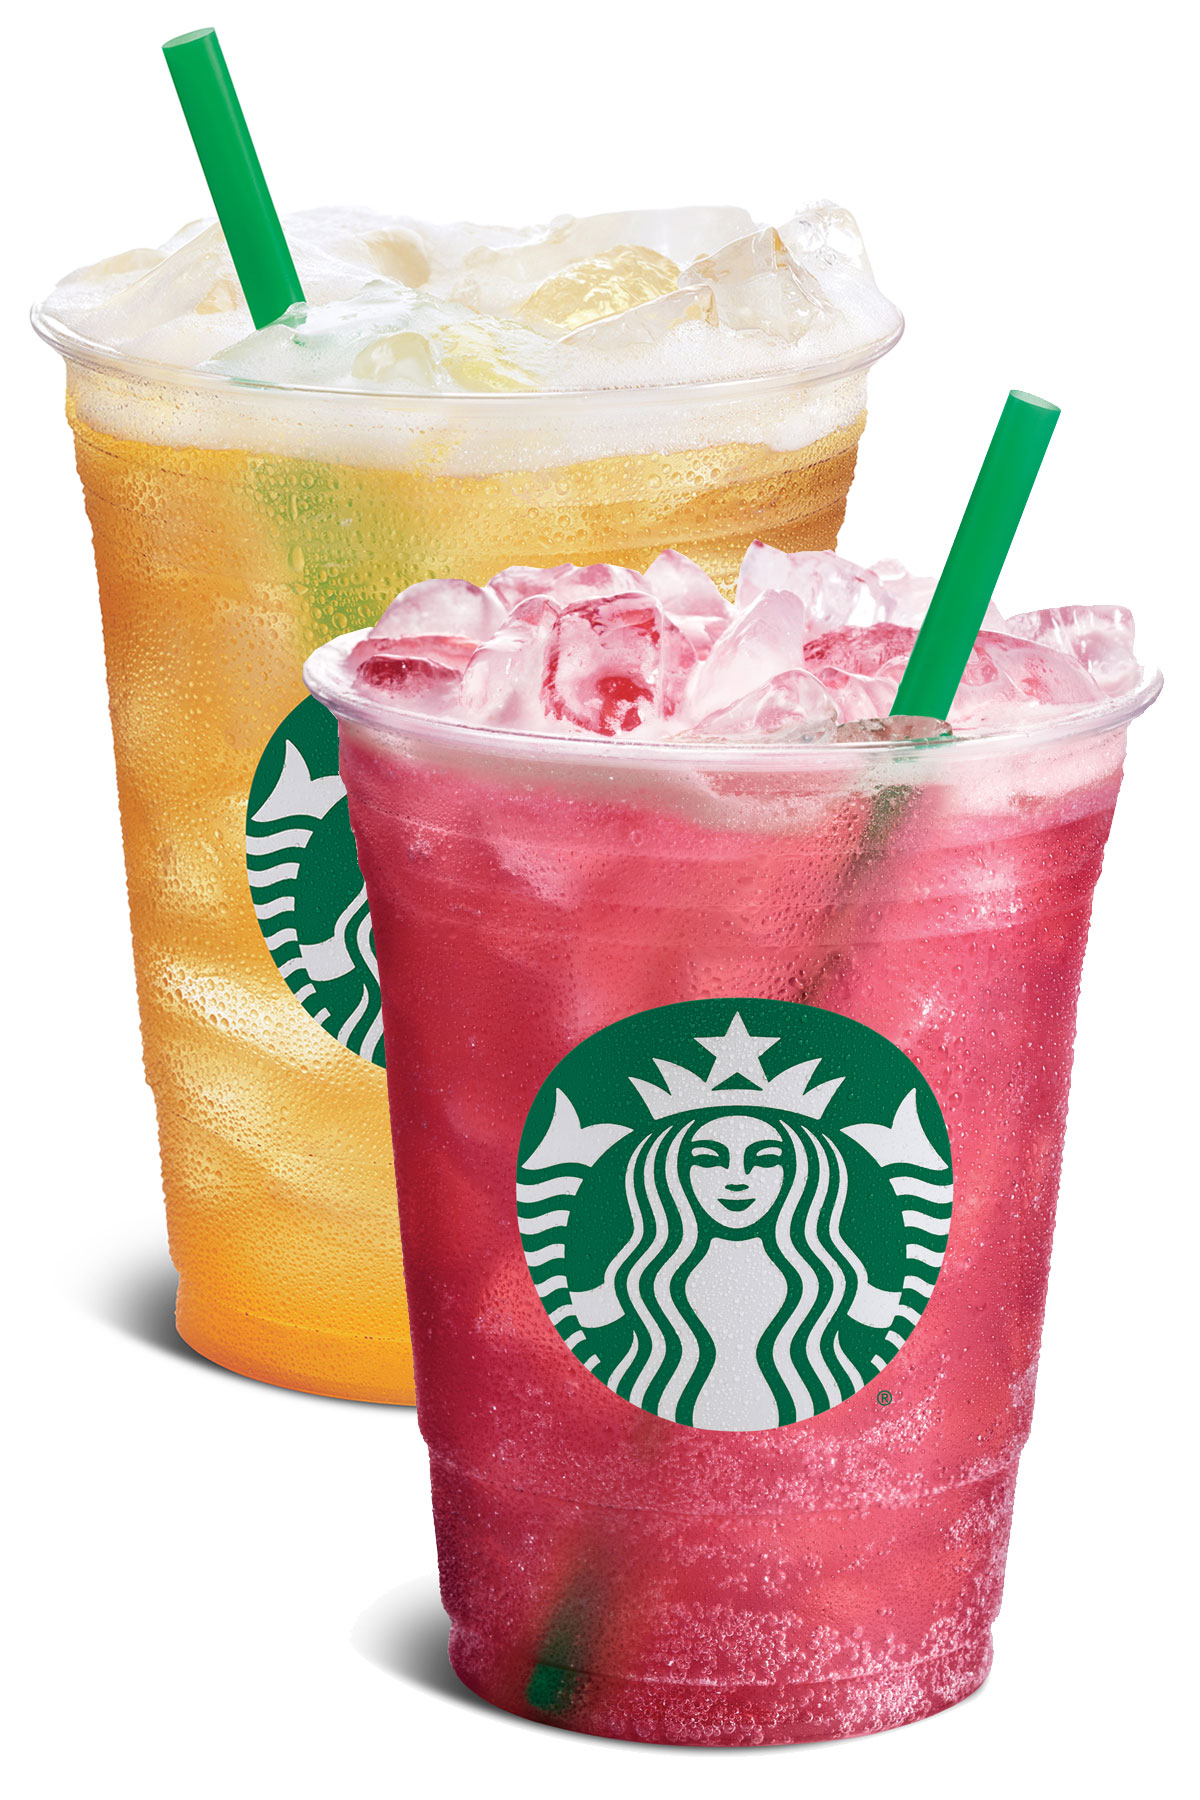 Two Starbucks iced drinks with green straws.